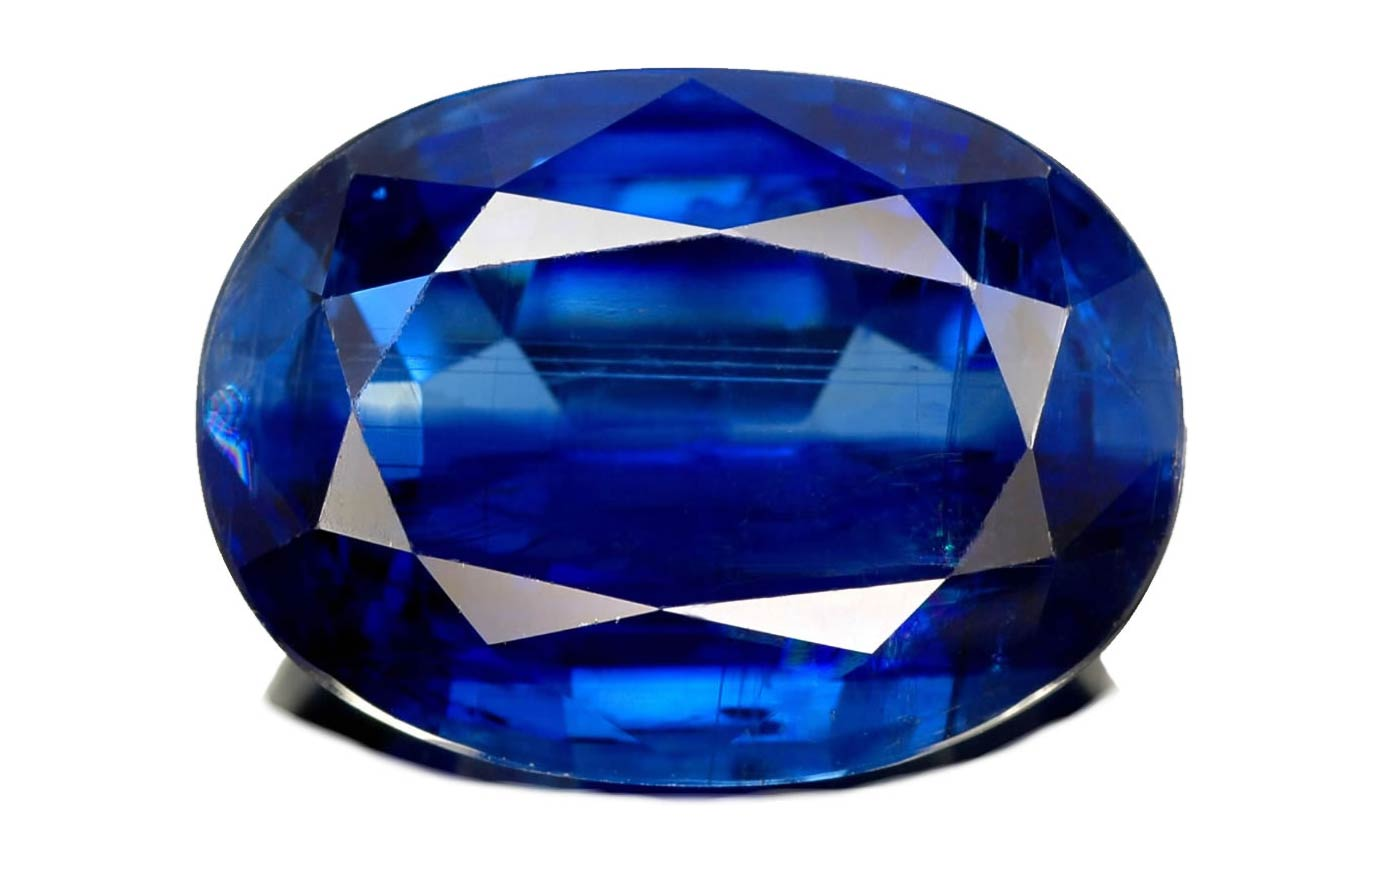 Kyanite May Look Like Blue Sapphire, but These are Very Different Gemstones